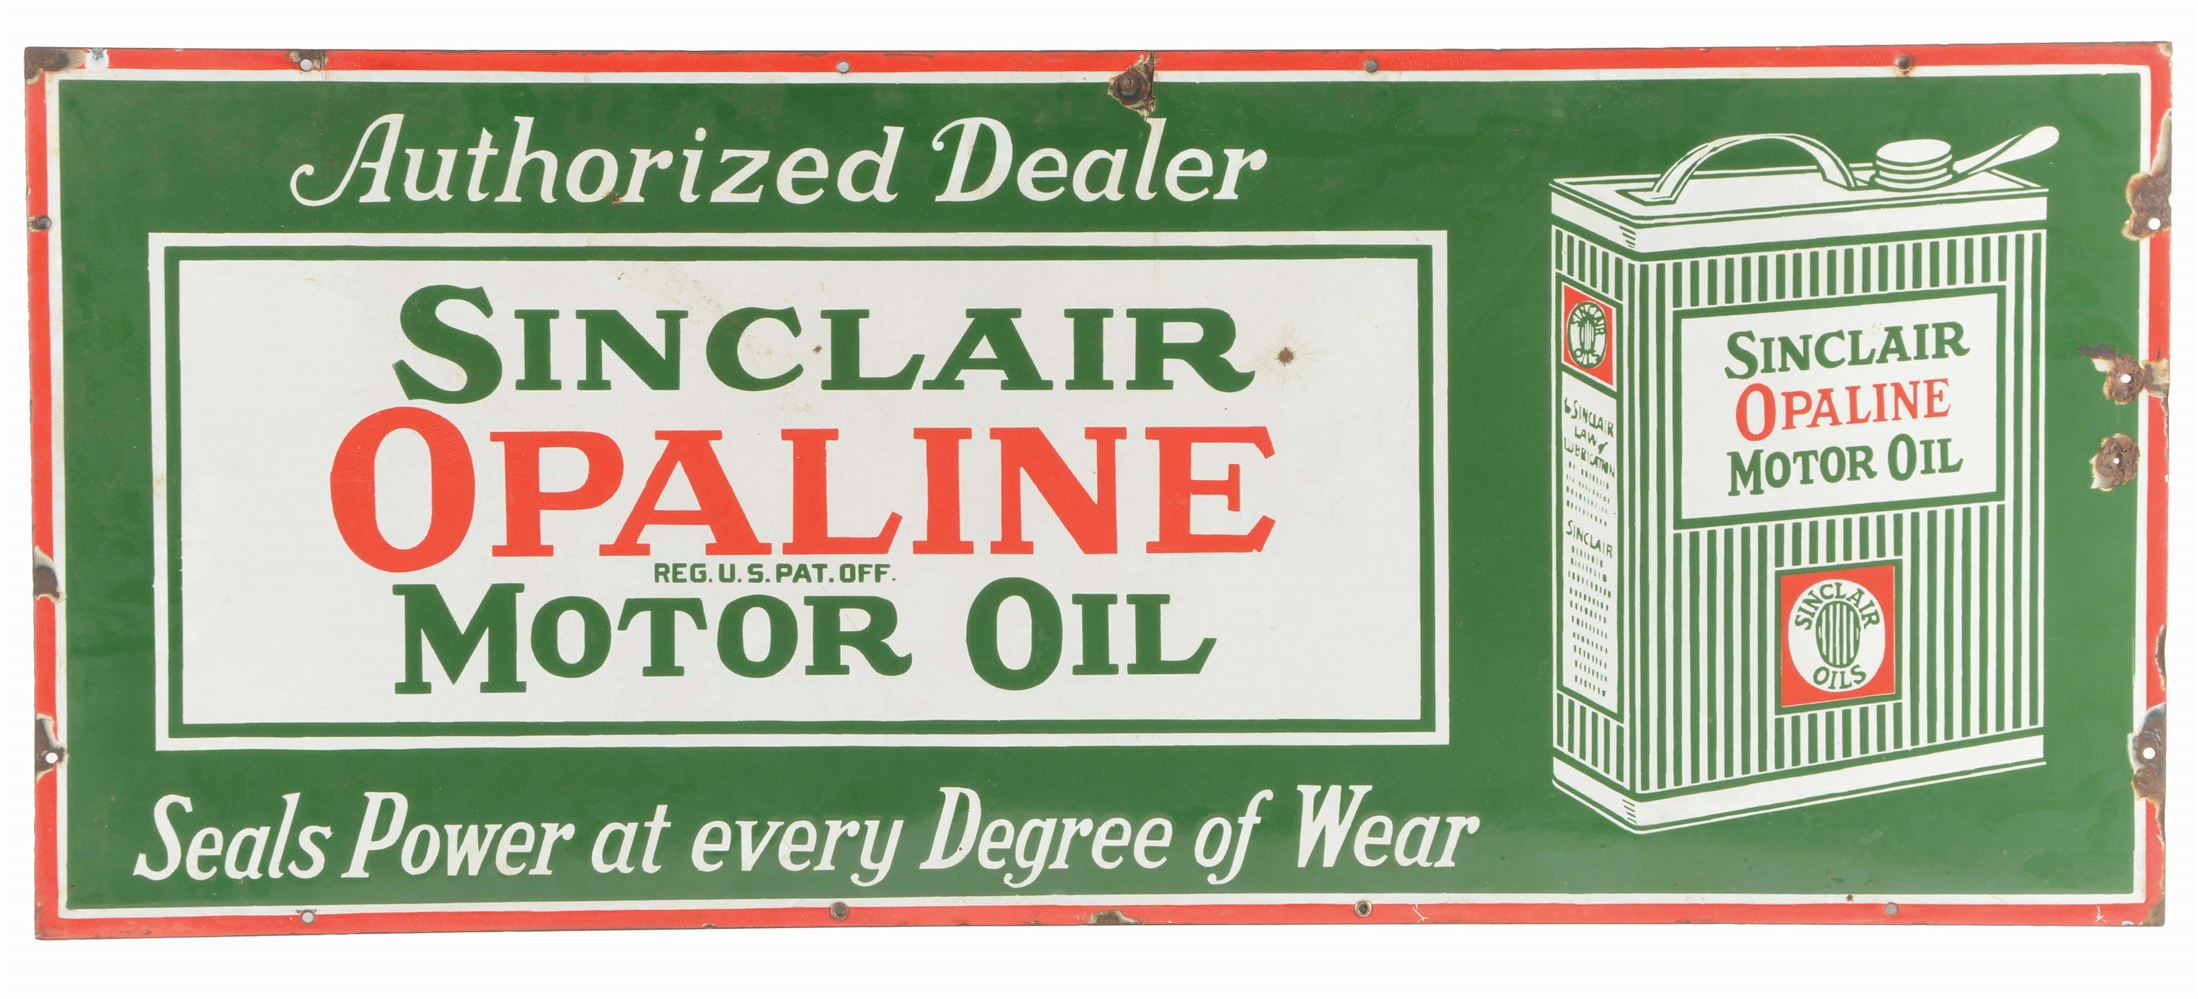 SINCLAIR OPALINE MOTOR OIL PORCELAIN SIGN W/ CAN GRAPHIC.